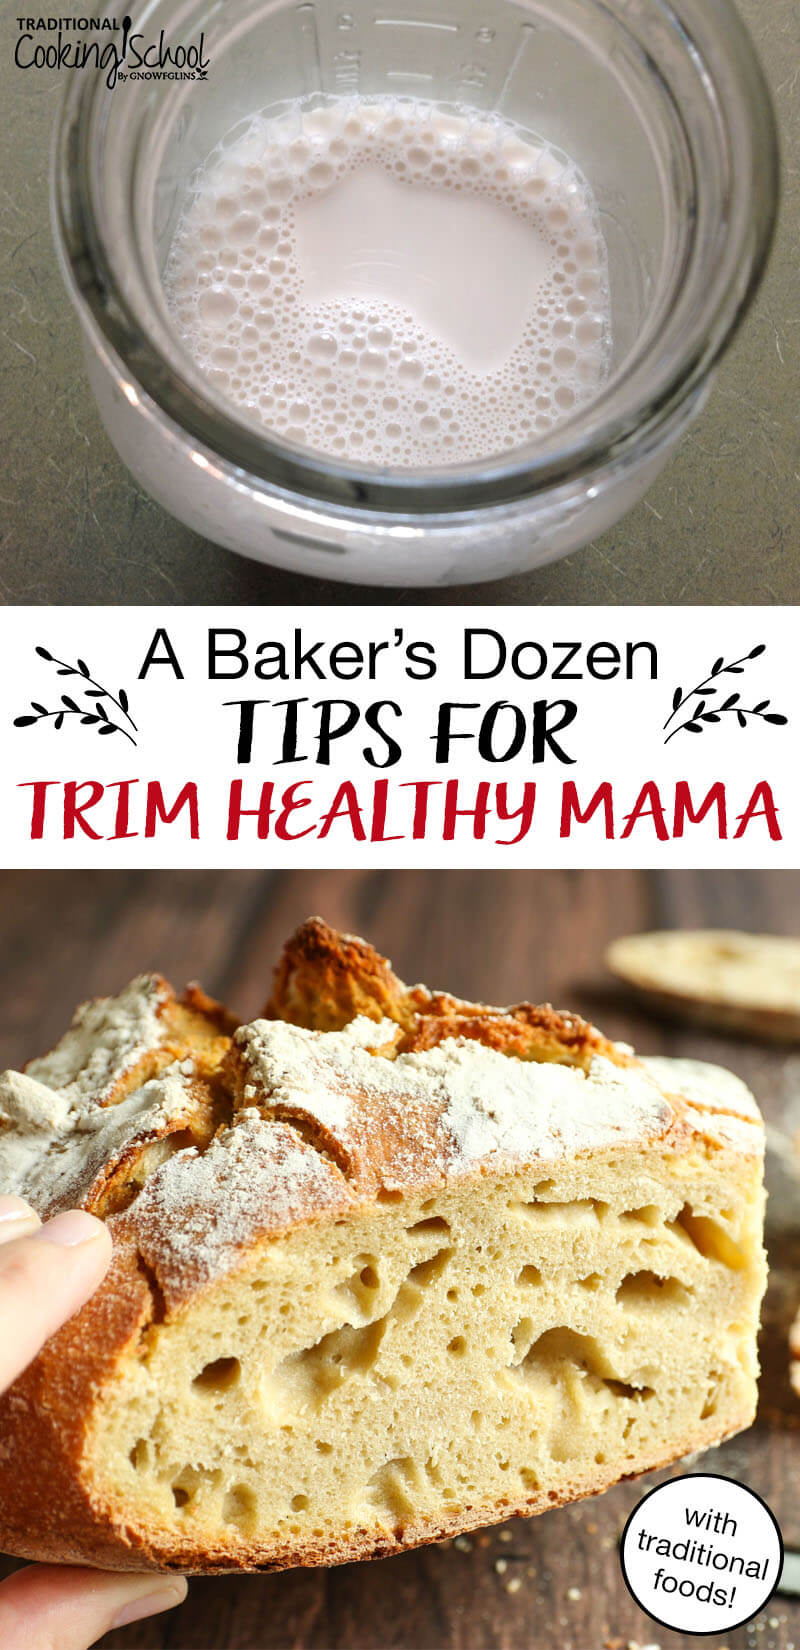 "Two images, one of a mason jar filled with bubbly milk. The other of a thick slice of sourdough bread. Text overlay says, ""A Baker's Dozen Tips for Trim Healthy Mama - with traditional foods!"""